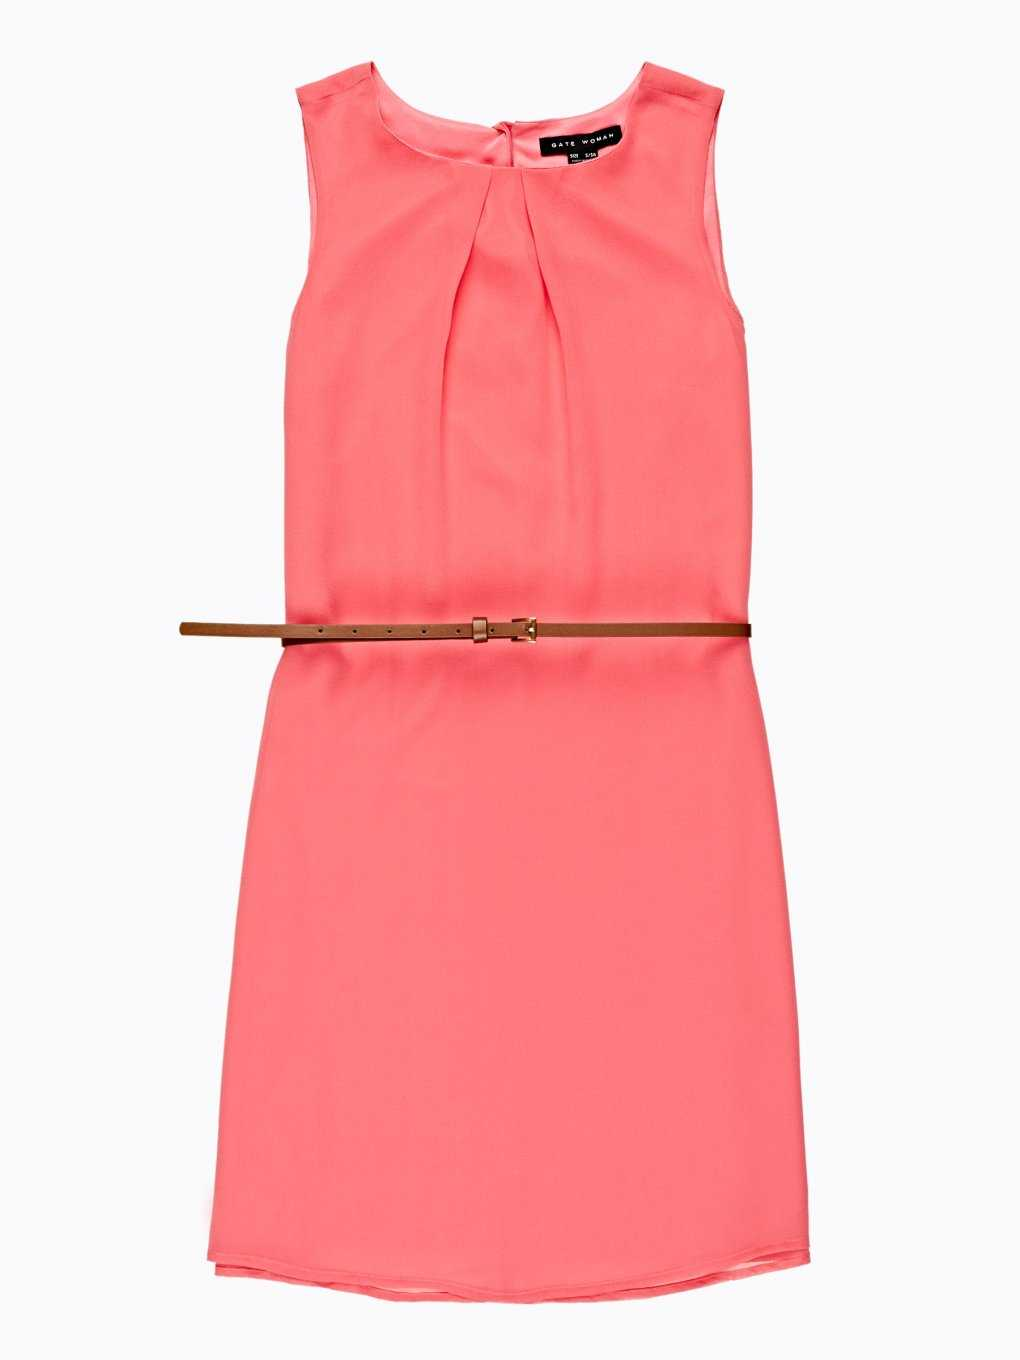 Sleeveless chiffon dress with belt